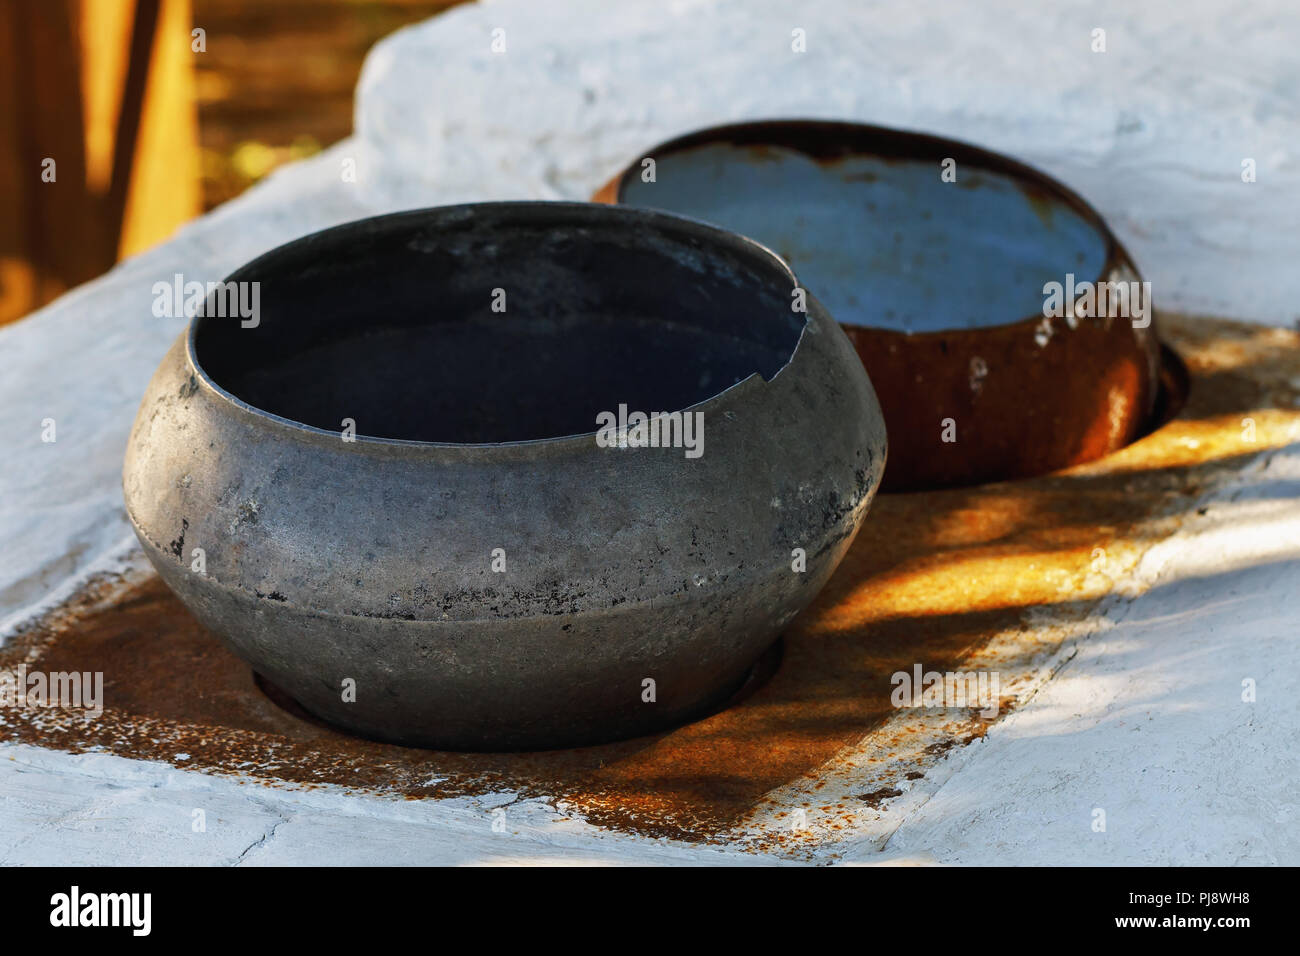 Old rustic cast iron standing on the stove, close-up - Stock Image